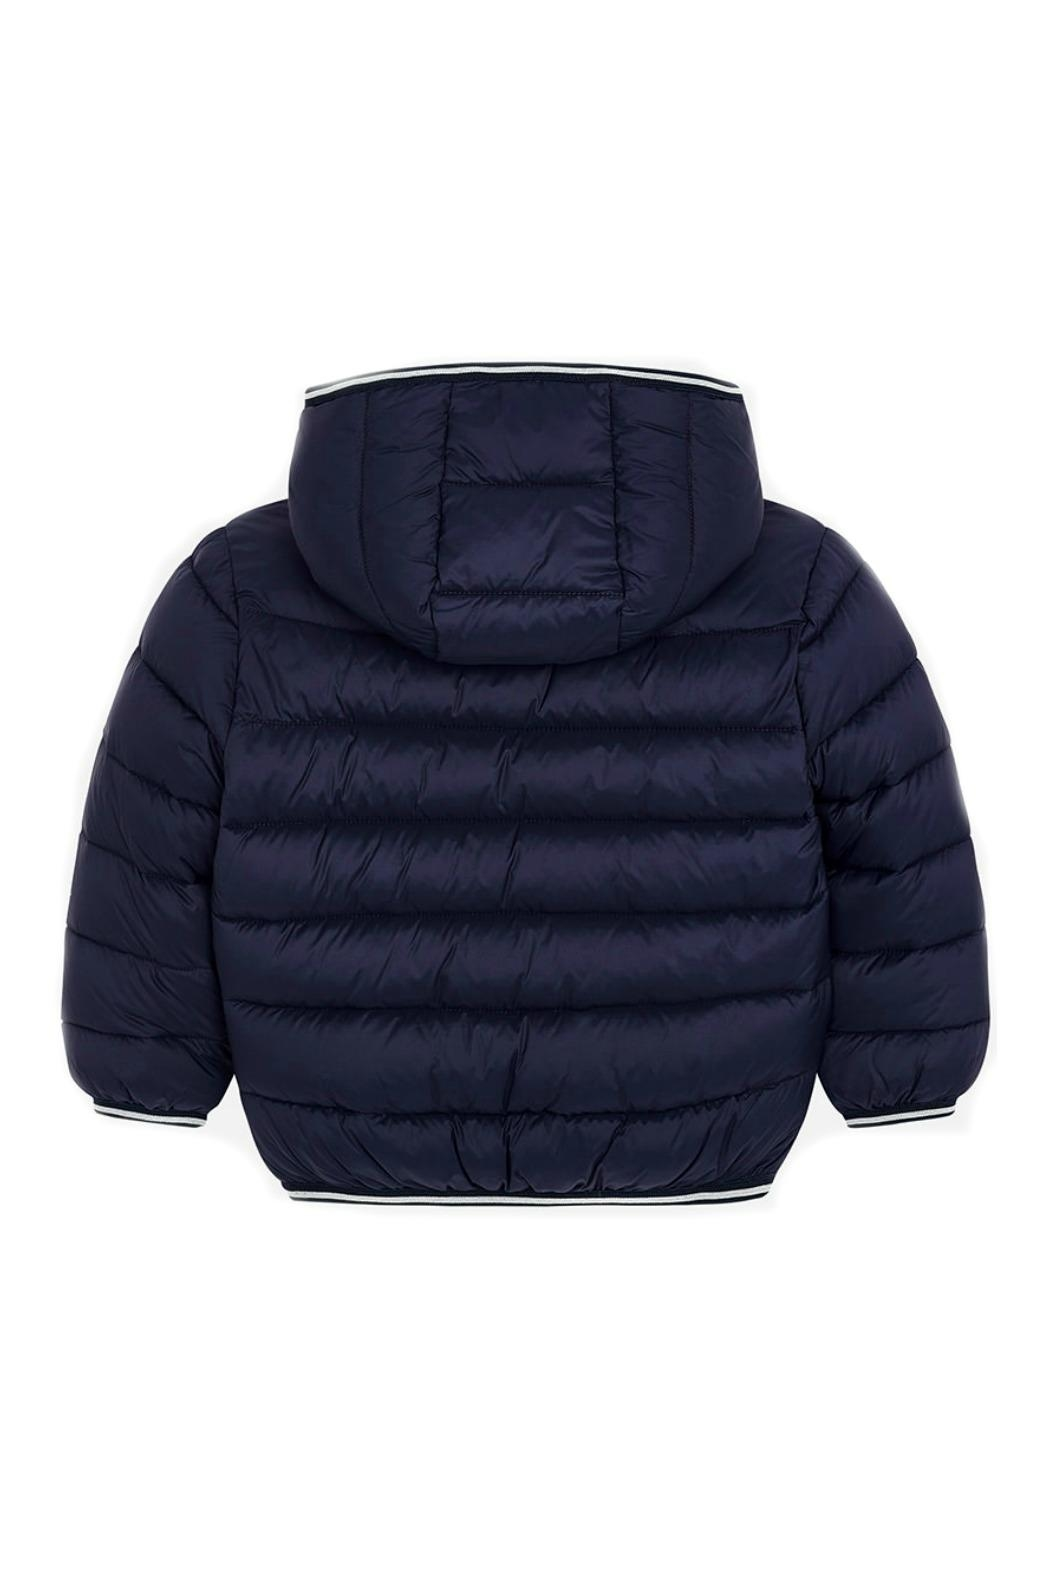 Mayoral Boys-Navy-Jacket-With-Hood - Front Full Image